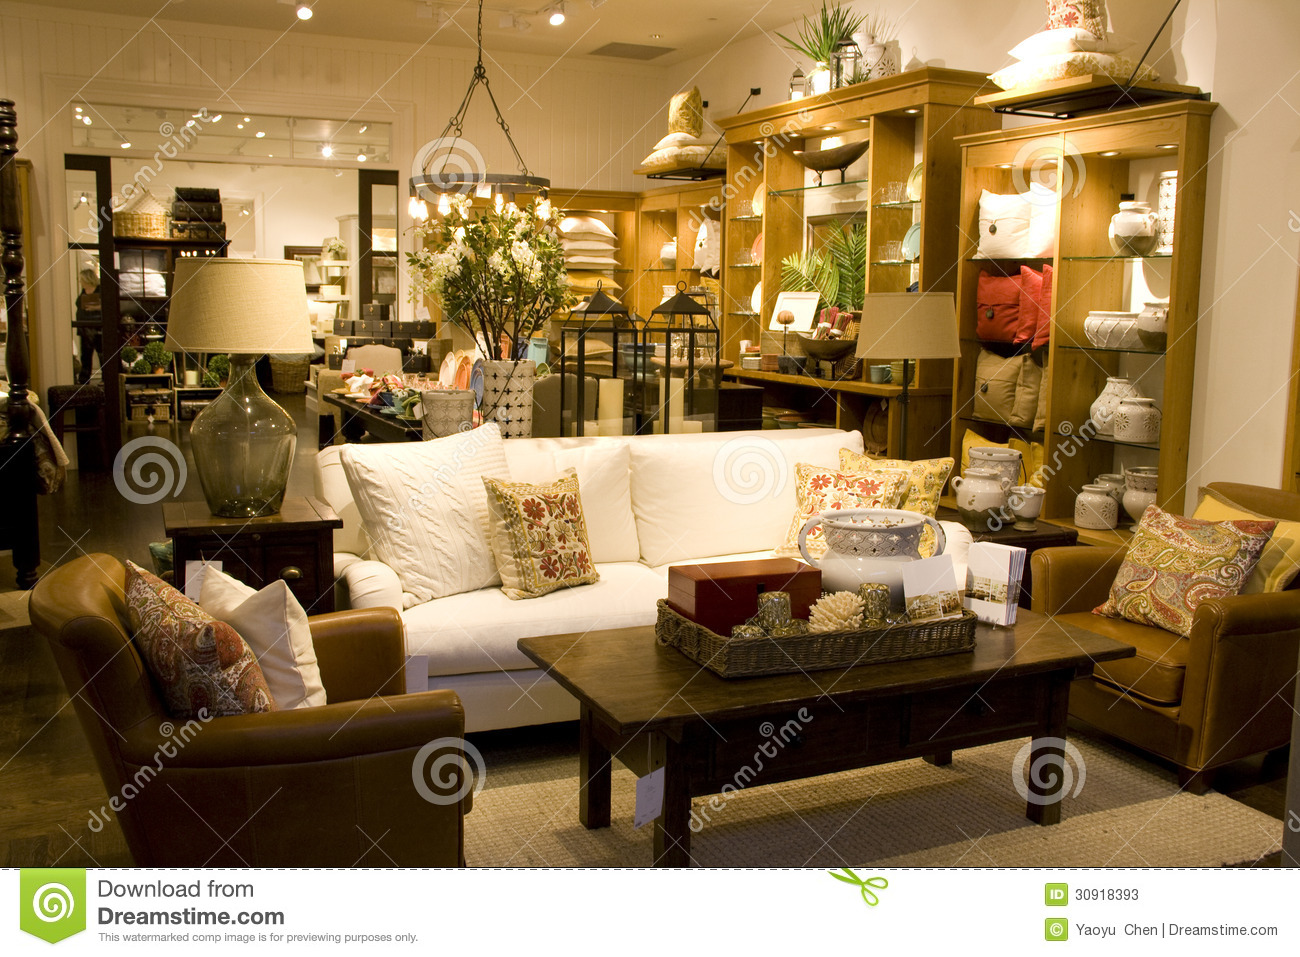 home decor store canada furniture and home decor stock image image 30918393 11108